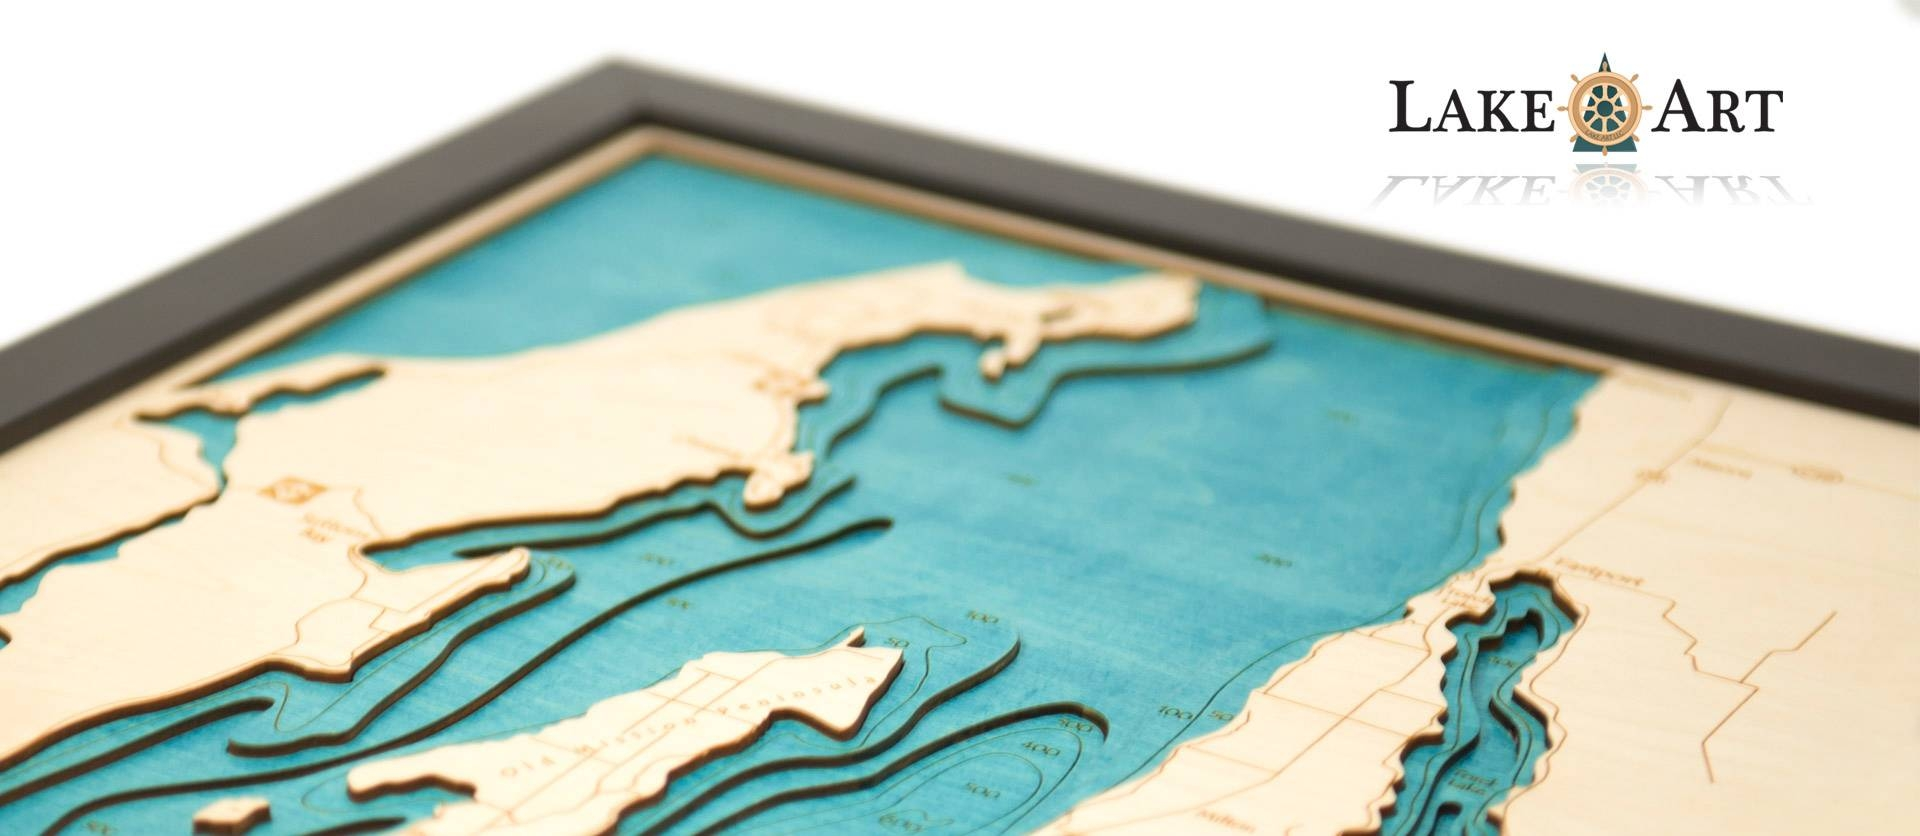 Lake Art – Original, Authentic, 100% Made In America Intended For Current Lake Map Wall Art (View 6 of 20)